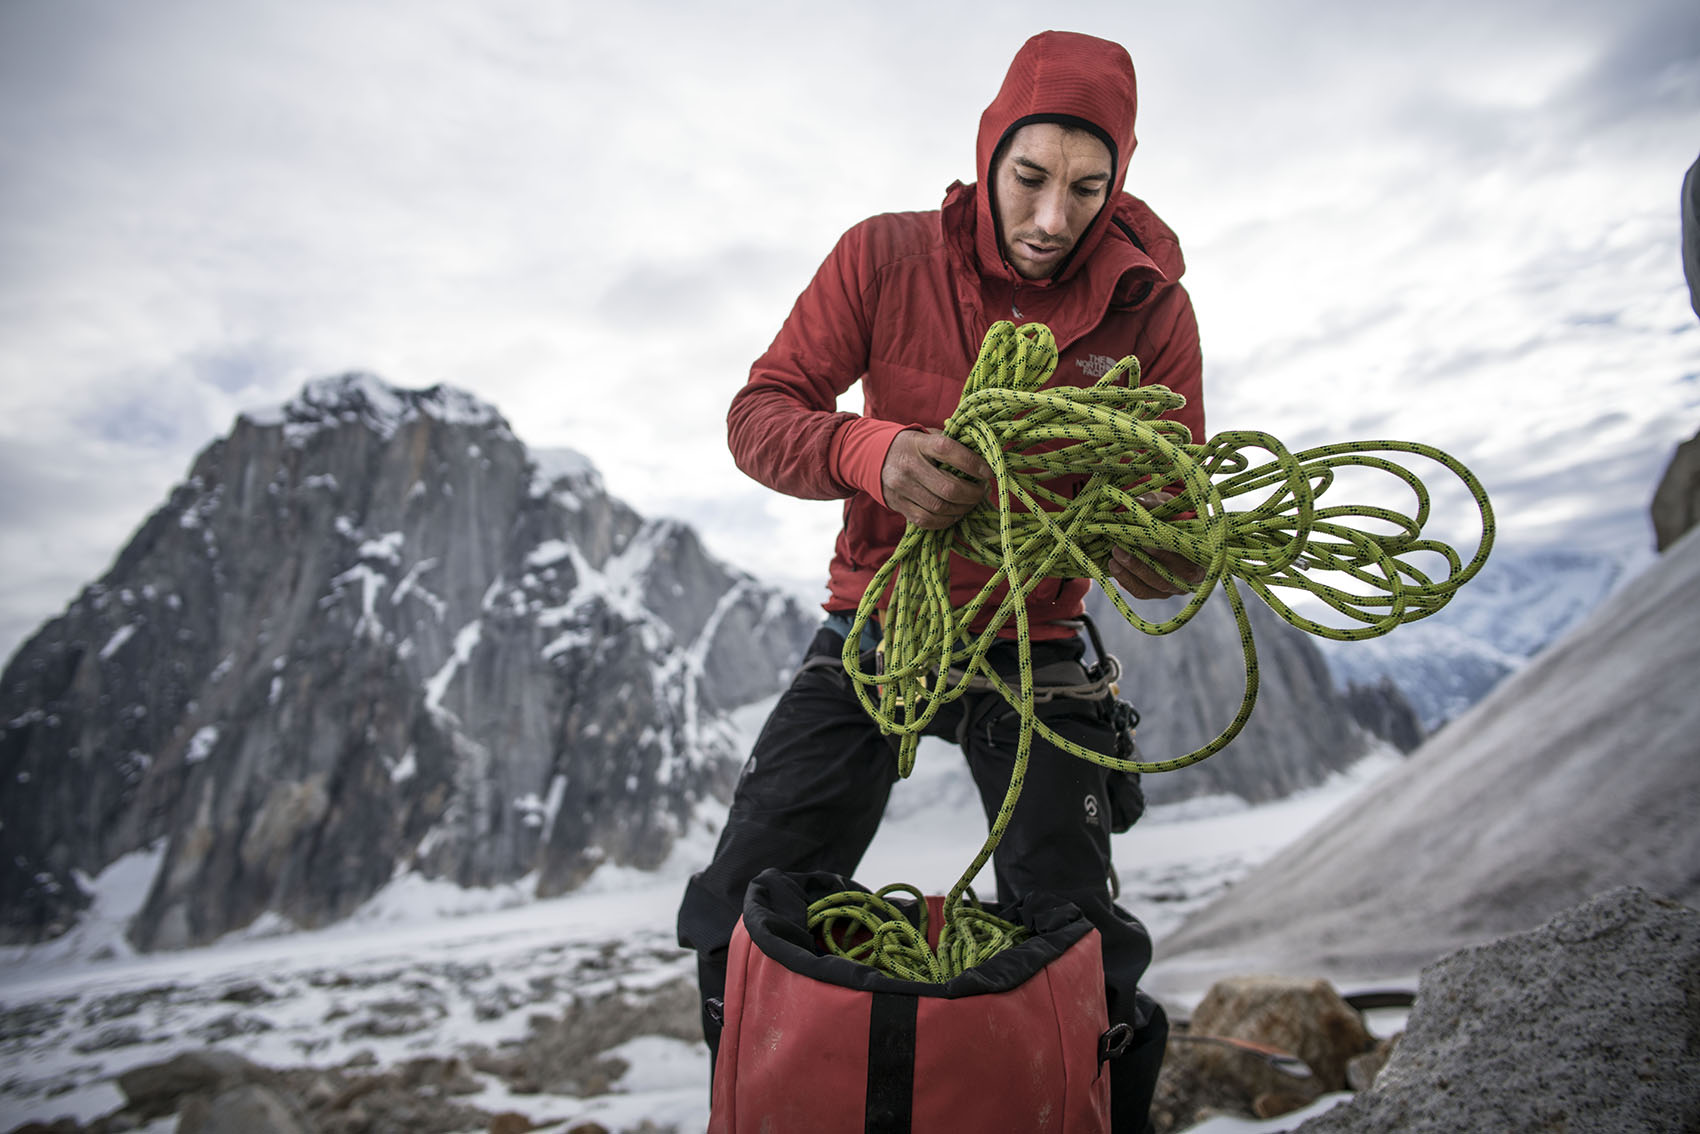 Alex Honnold What's Cooking